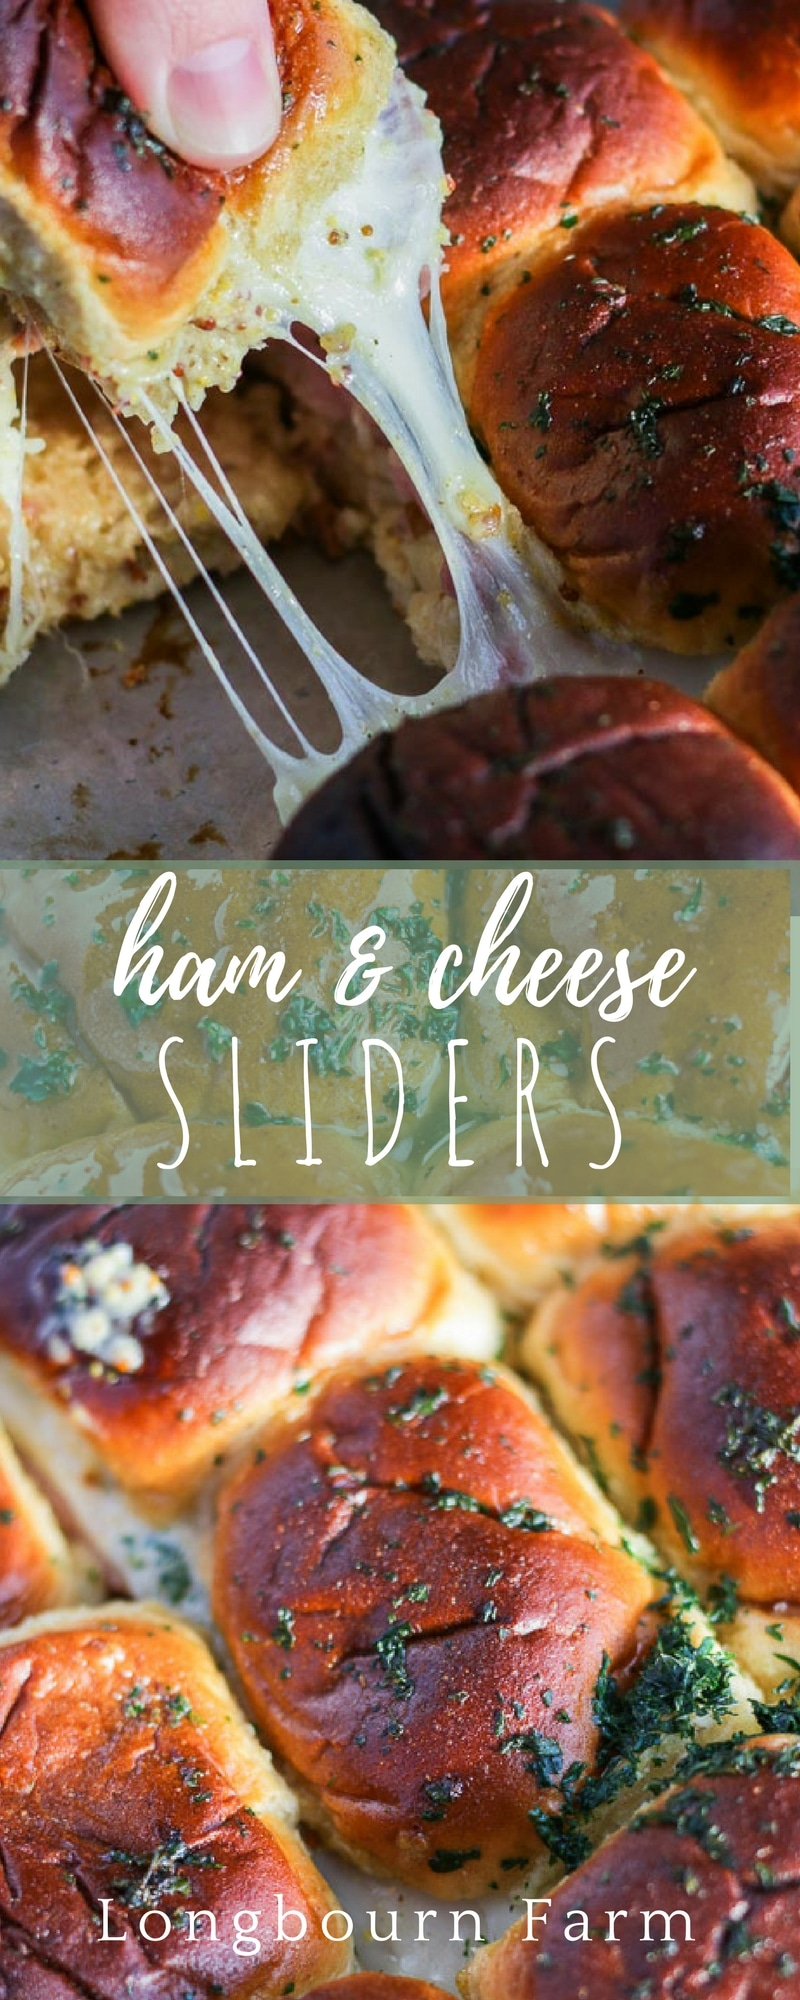 Ham and cheese sliders are a fast and delicious way to get a meal done quick or even a great appetizer for game day or party day. Packed with flavor and ultra cheesy!